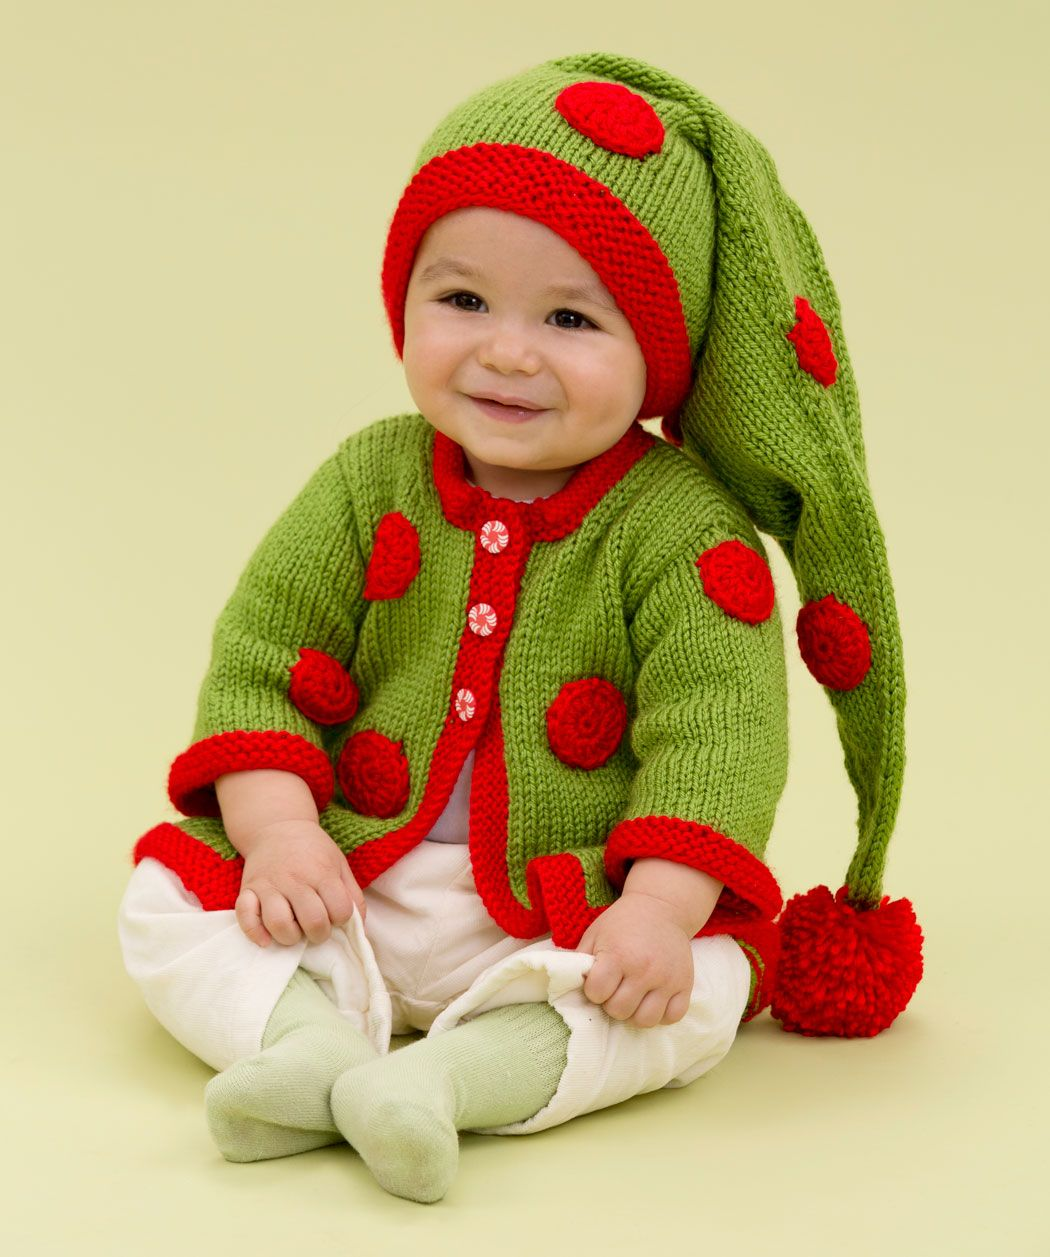 Santas baby elf free knitting pattern from red heart yarns new santas baby elf free knitting pattern from red heart yarns bankloansurffo Images